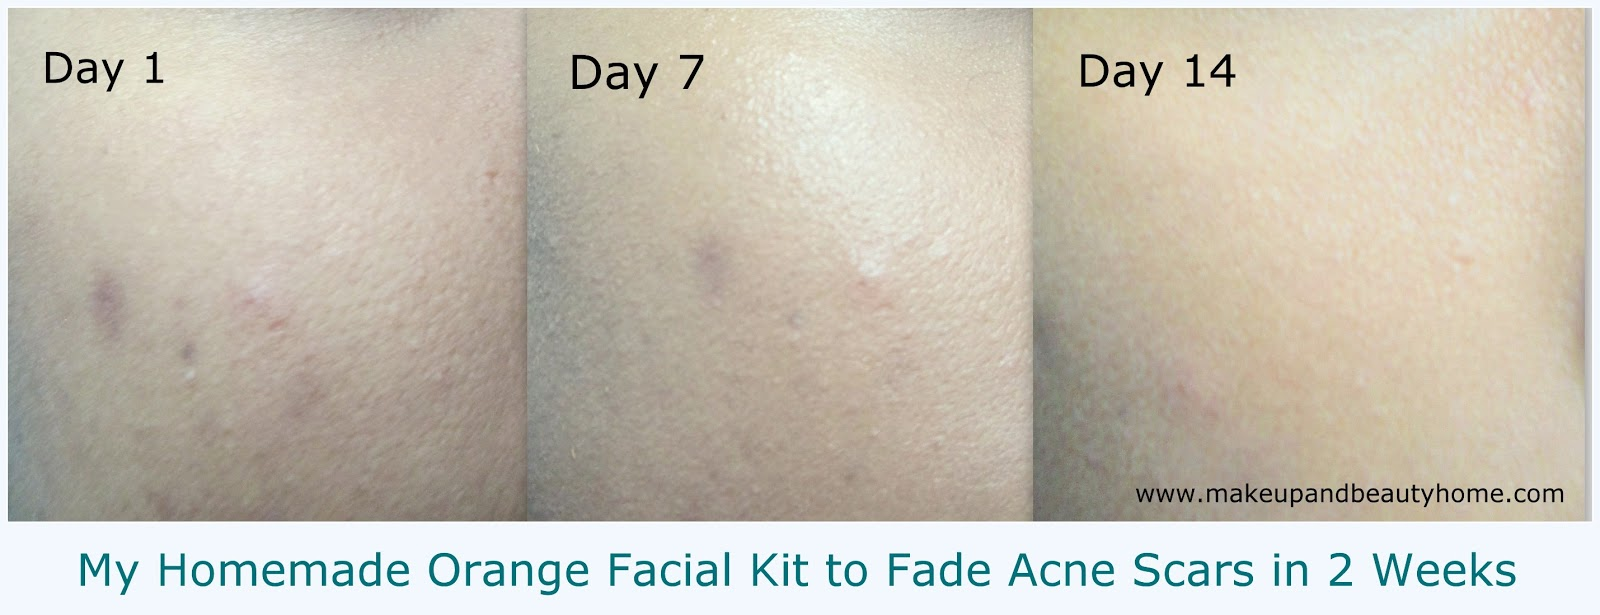 clearing acne after steroids